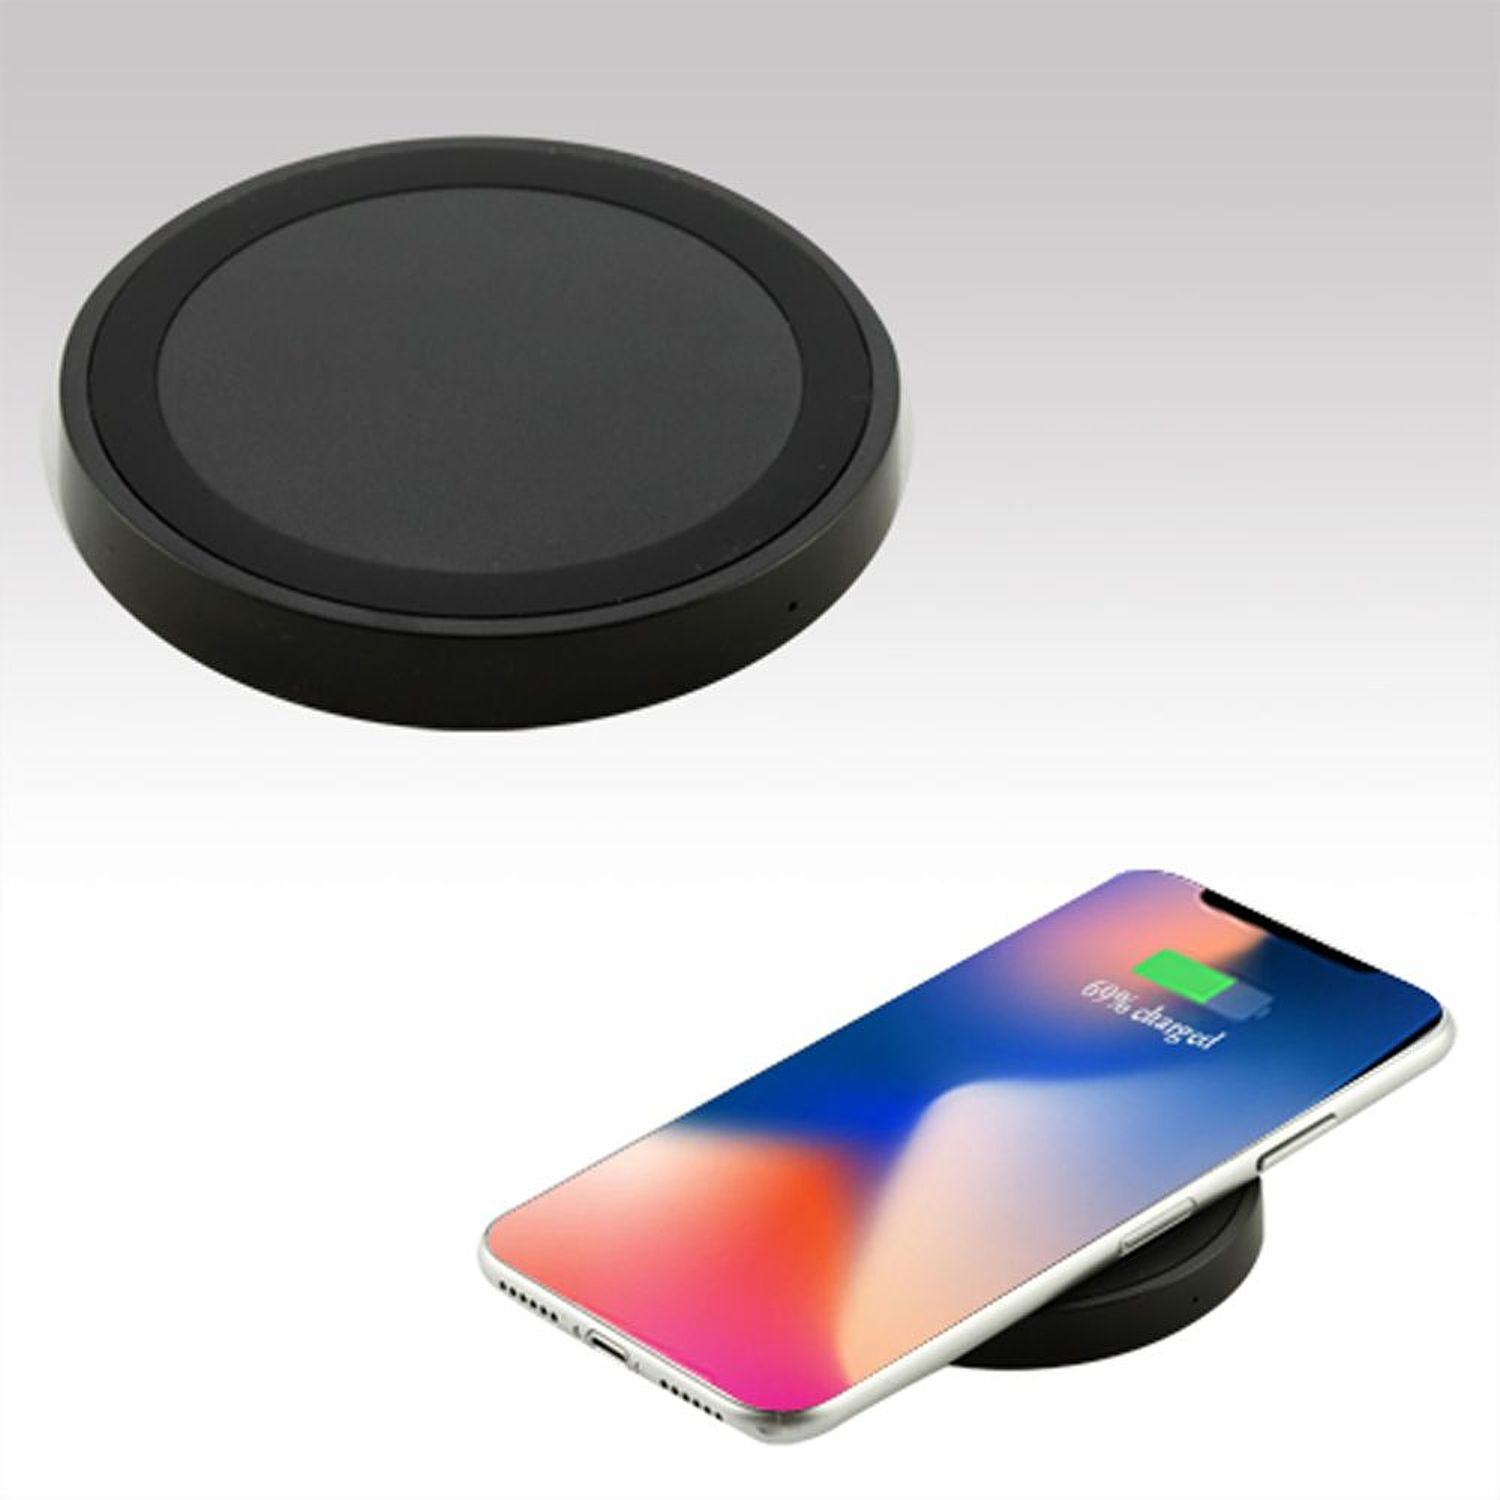 Accesorio Para El Celular Wireless Charger by Insten Ultra Slim Fast Qi Wireless Charging Pad with Anti-Slip Base for Apple iPhone X 8 Plus Samsung Galaxy S9 S9+ Note 8 S8  Qi-Enabled Devices Universal - Black + Insten en VeoyCompro.net